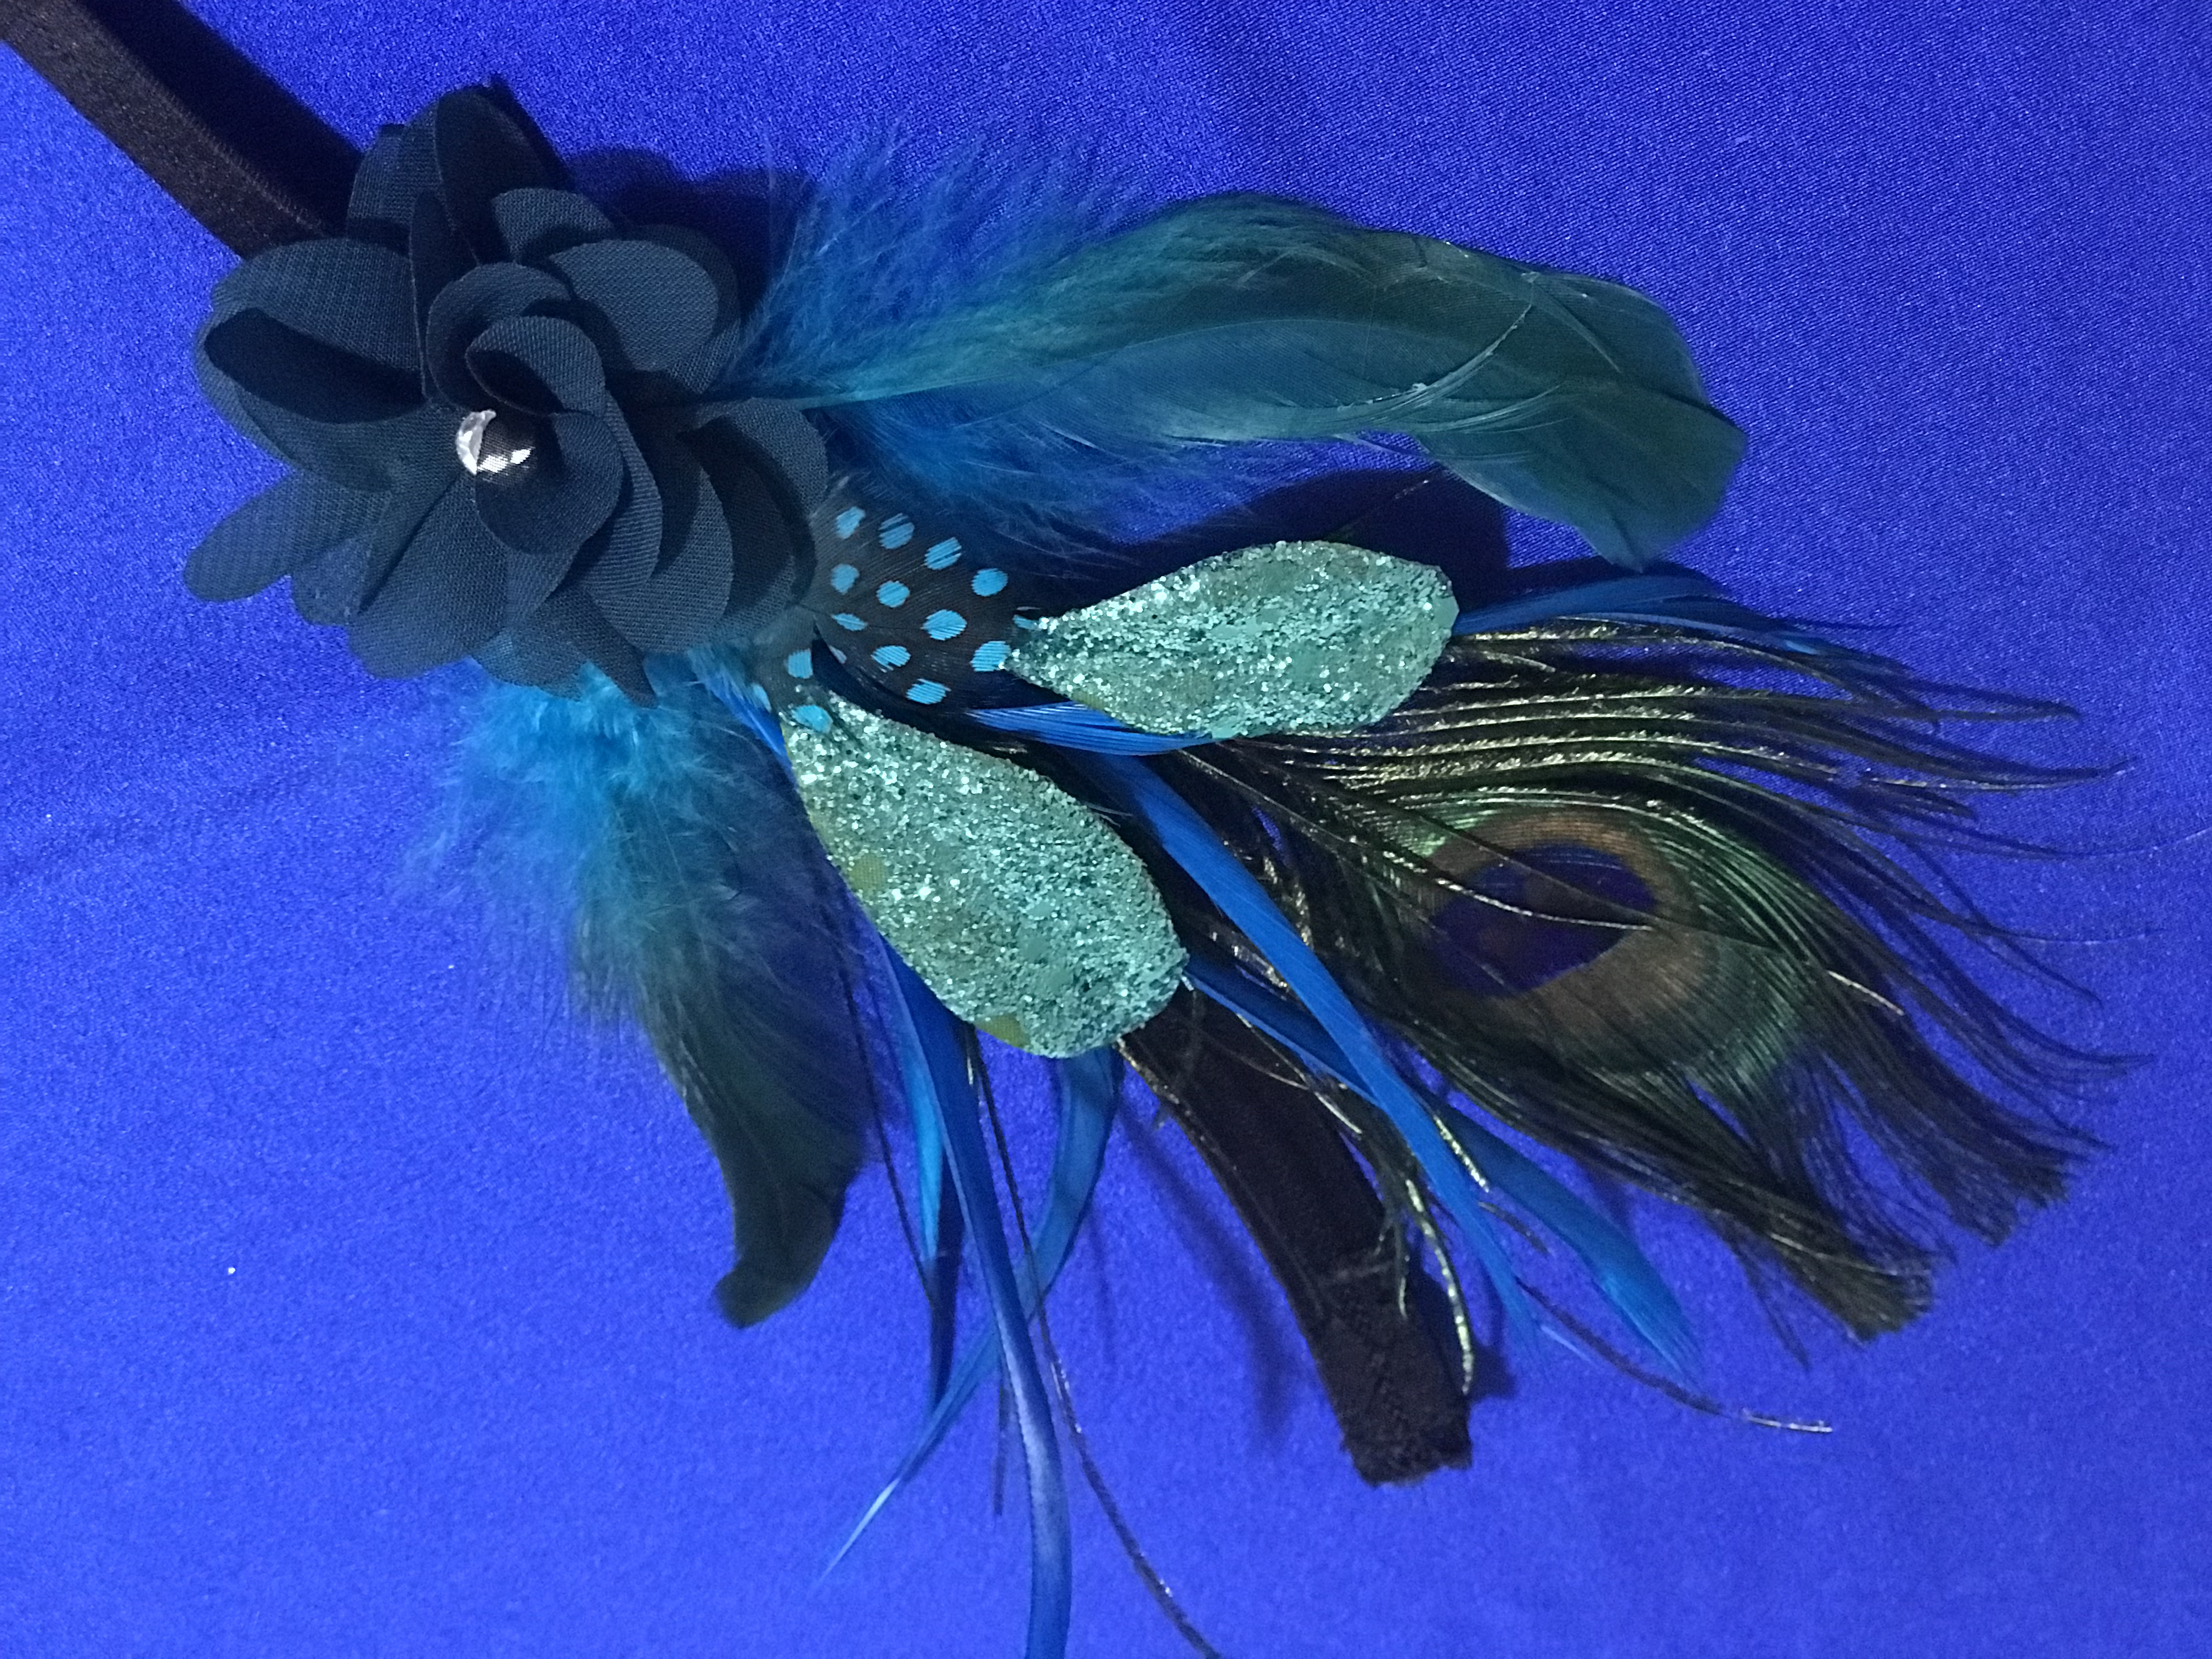 FOR SALE: Hand-Crafted Turquoise Peacock Feathered Headdress Headpiece for Carnival and Mardi Gras